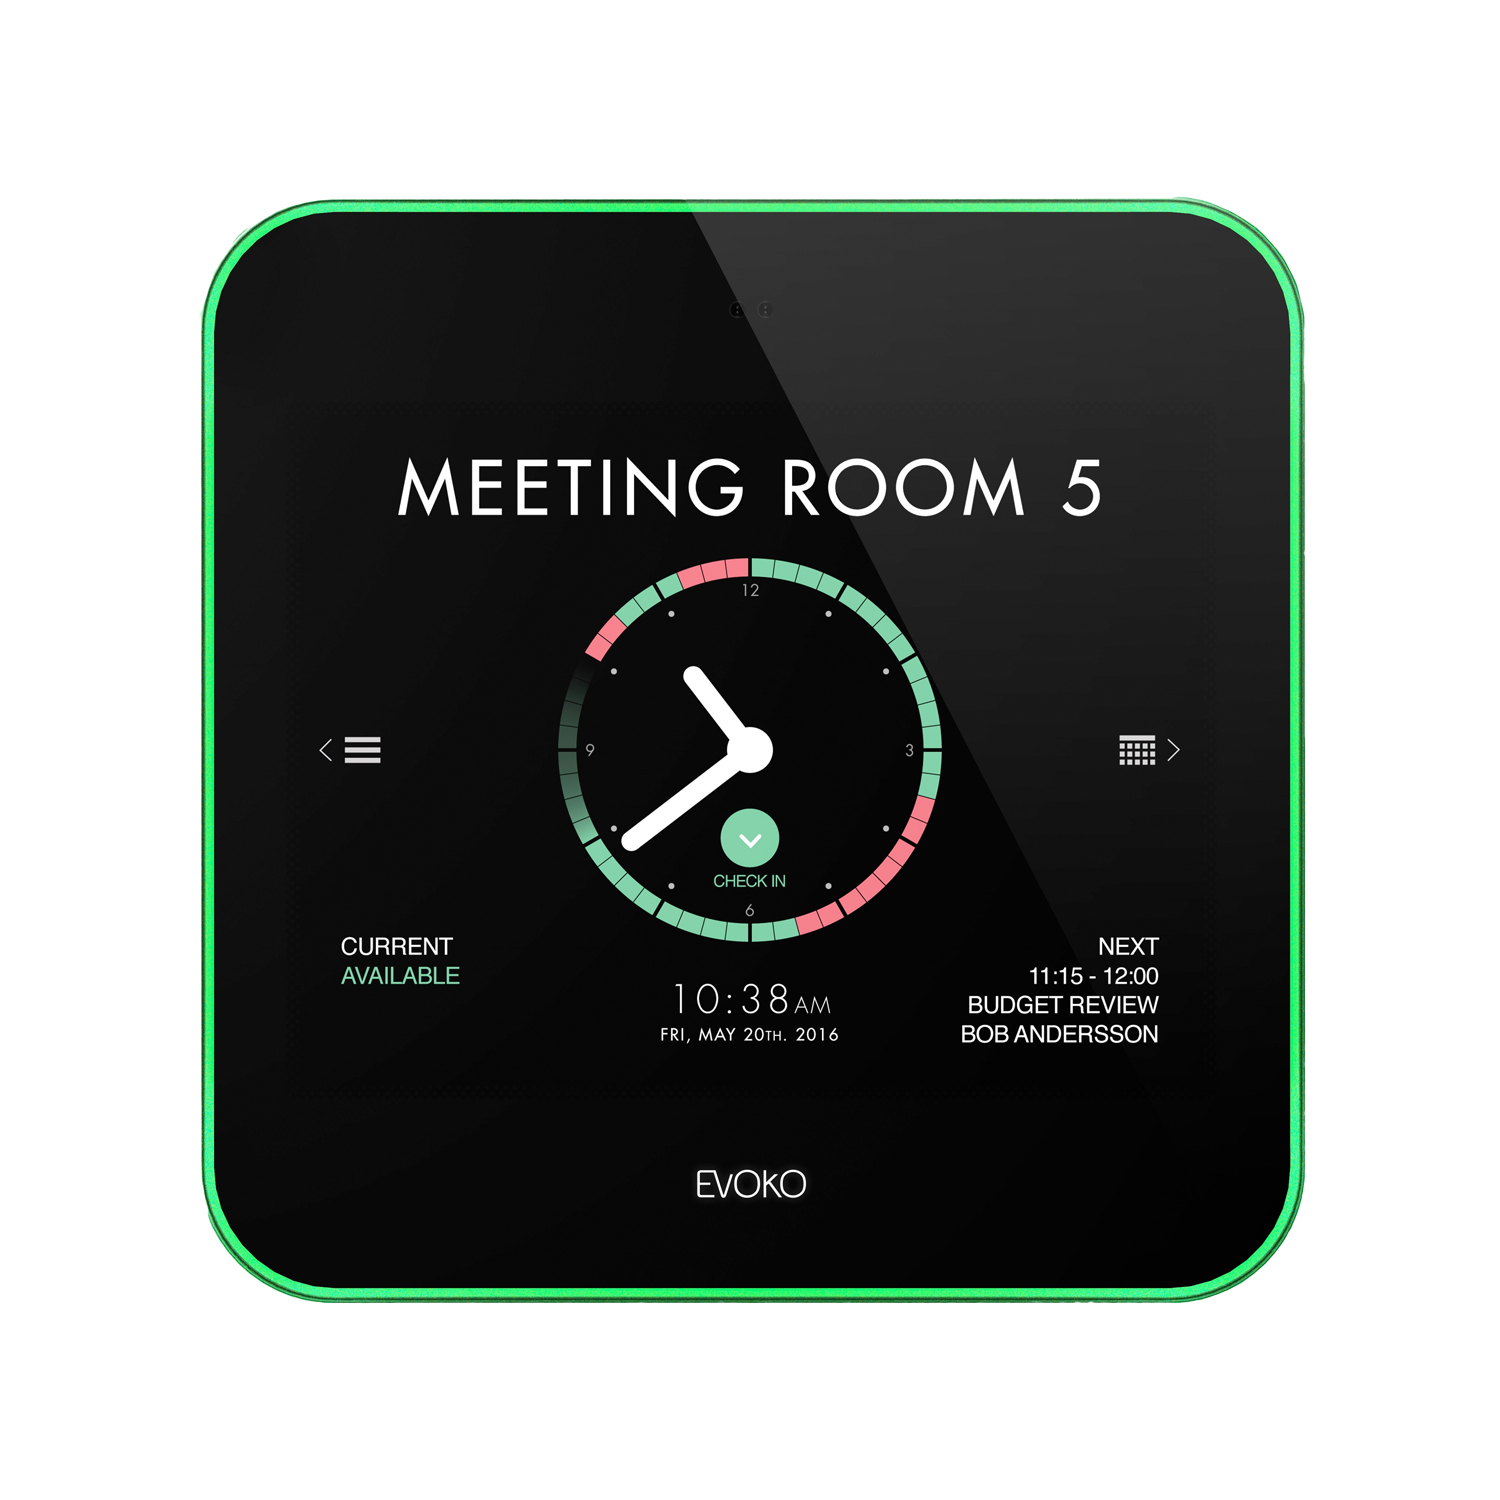 Evoko Liso Room Manager Meeting Room Booking System